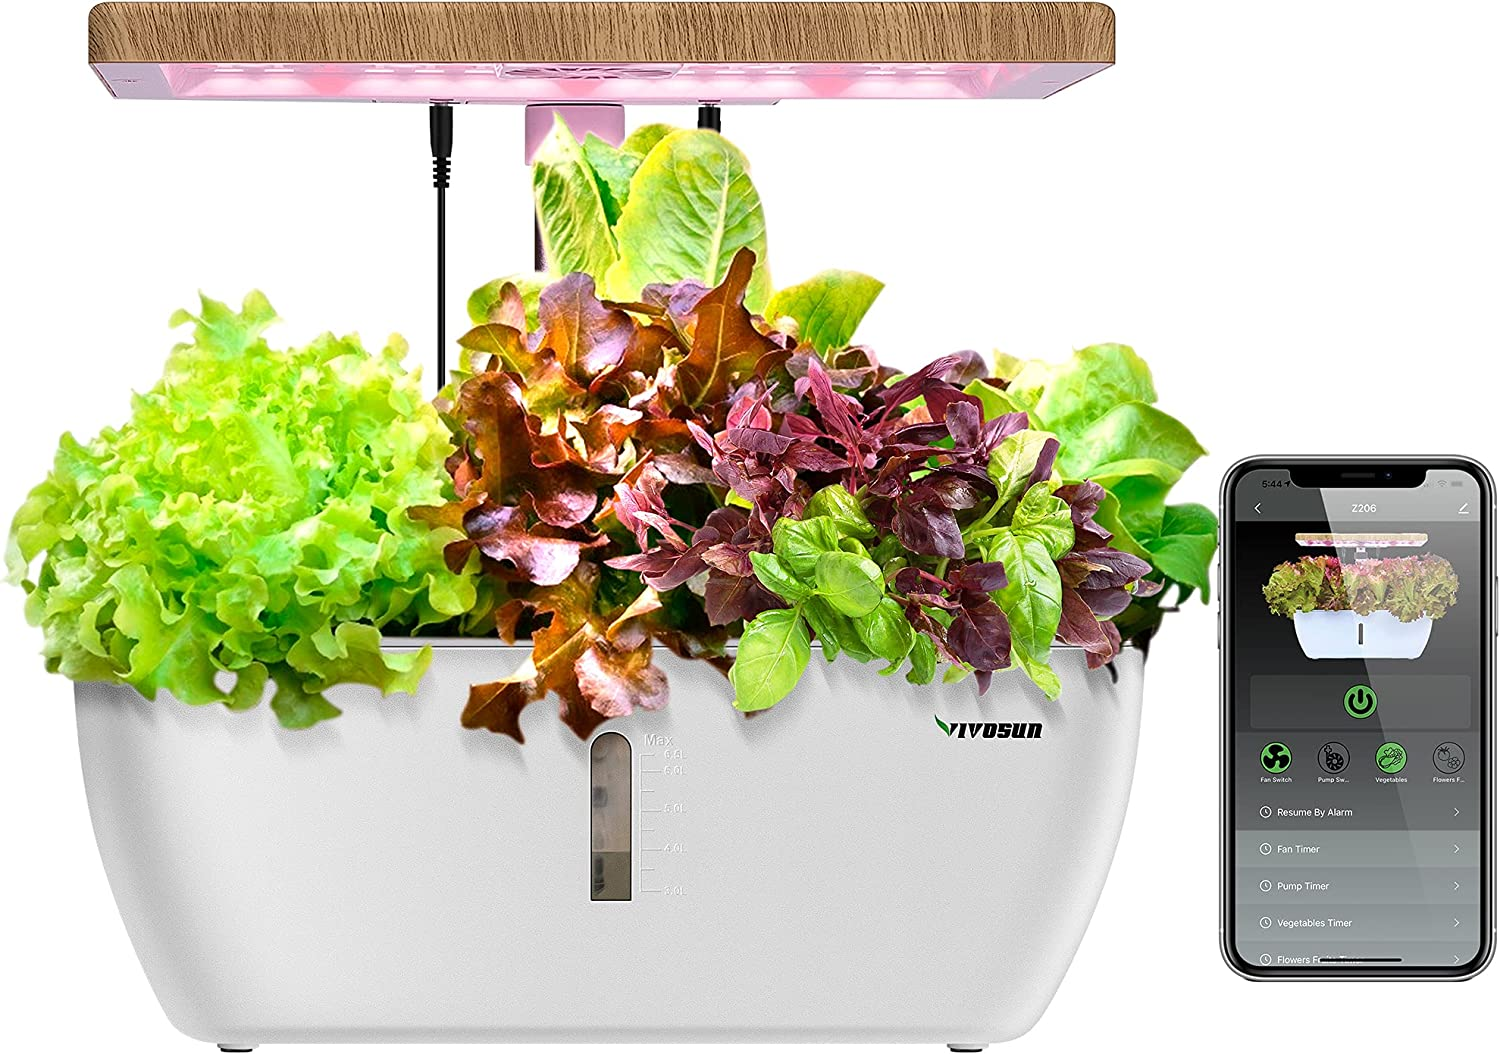 VIVOSUN Hydroponics Growing System, Herb Garden with Spectrum LED Light, Circulating Water Pump and Wireless Control for Indoor Germination and Planting